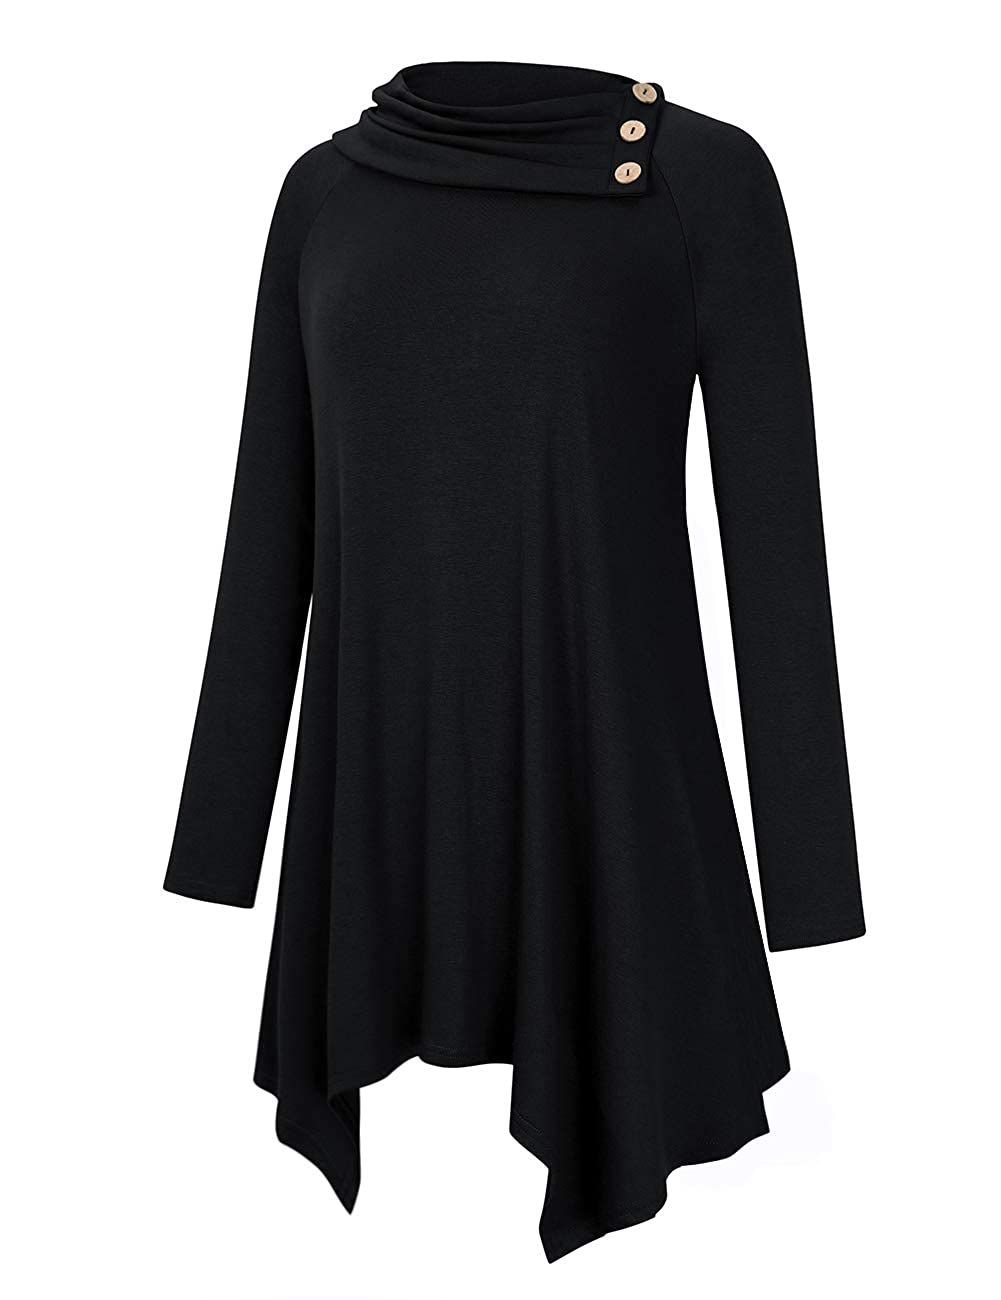 696b8f4462c AMZ PLUS Women's Plus Size Solid Cowl Neck Raglan Long Sleeve Casual Tunic  Blouse Top with Pockets at Amazon Women's Clothing store: